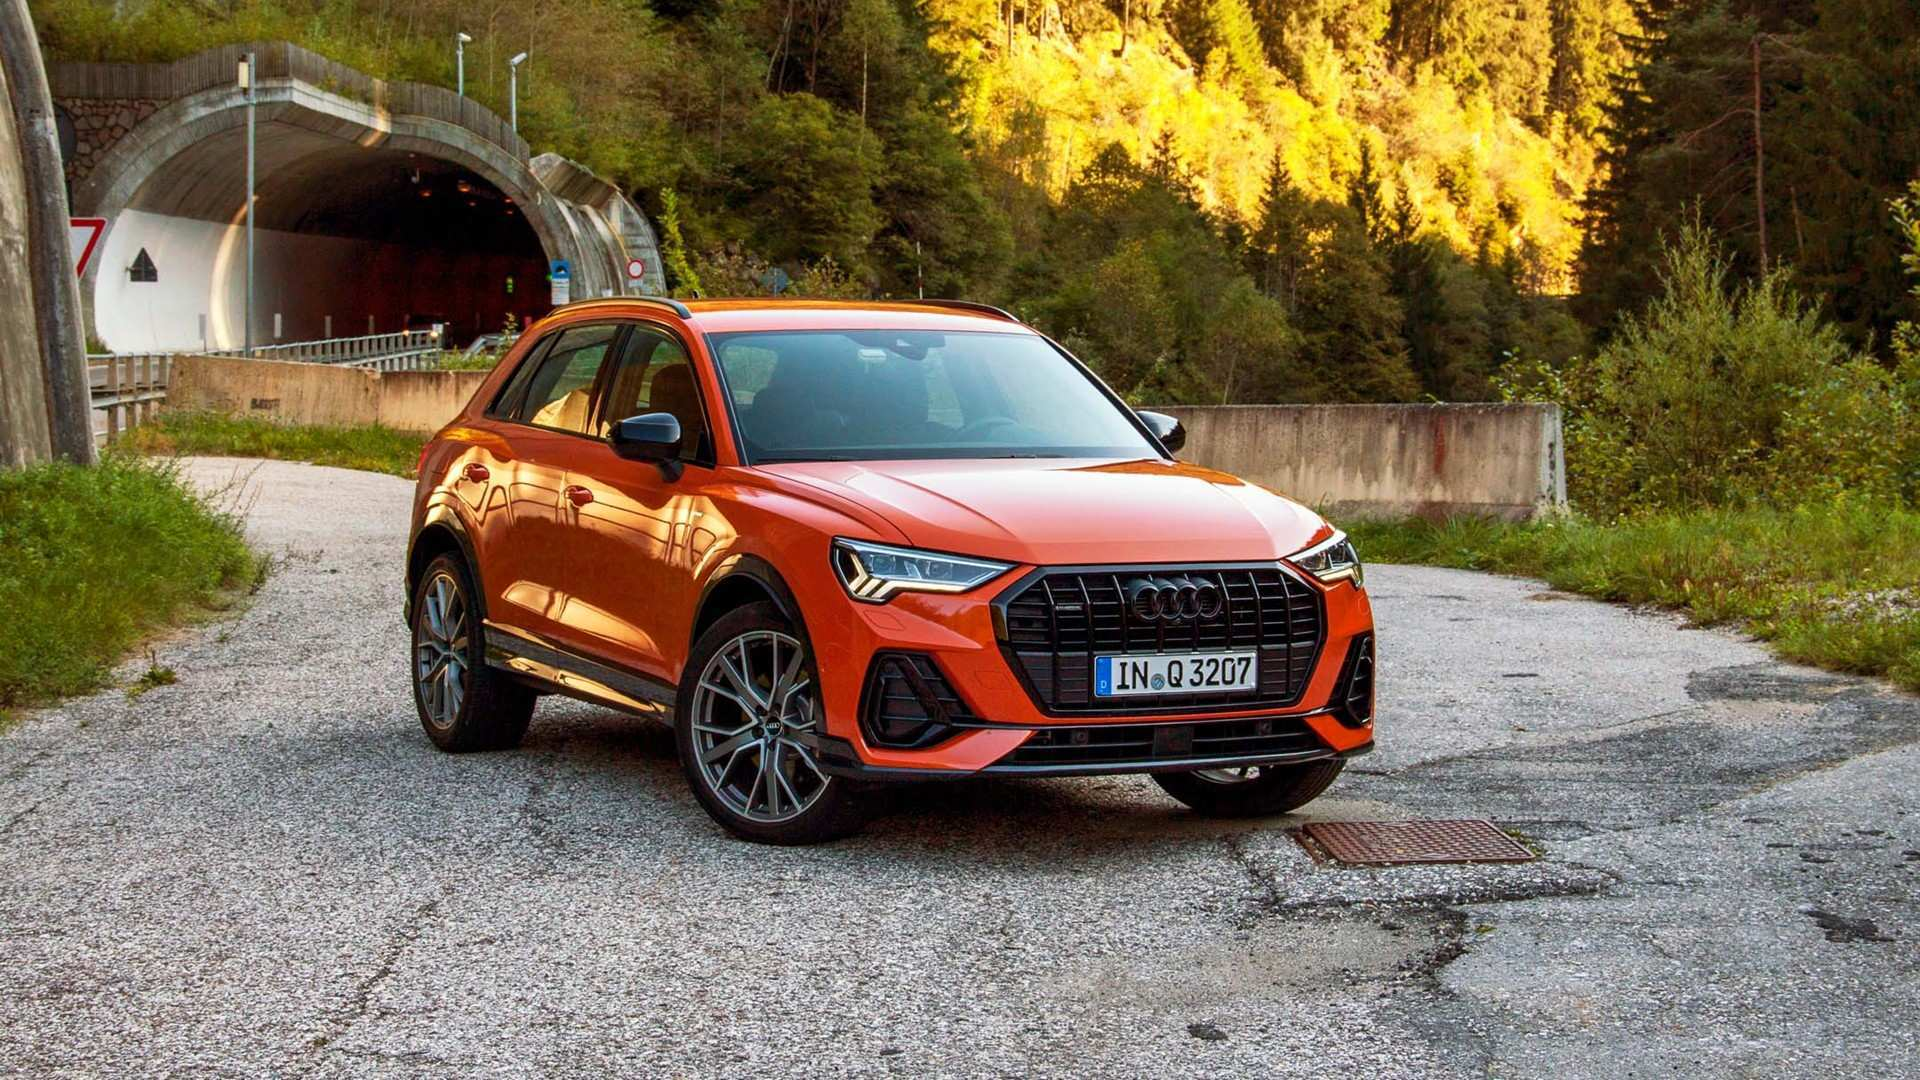 99 New 2019 Audi Q3 Vs Volvo Xc40 Release Date Review by 2019 Audi Q3 Vs Volvo Xc40 Release Date